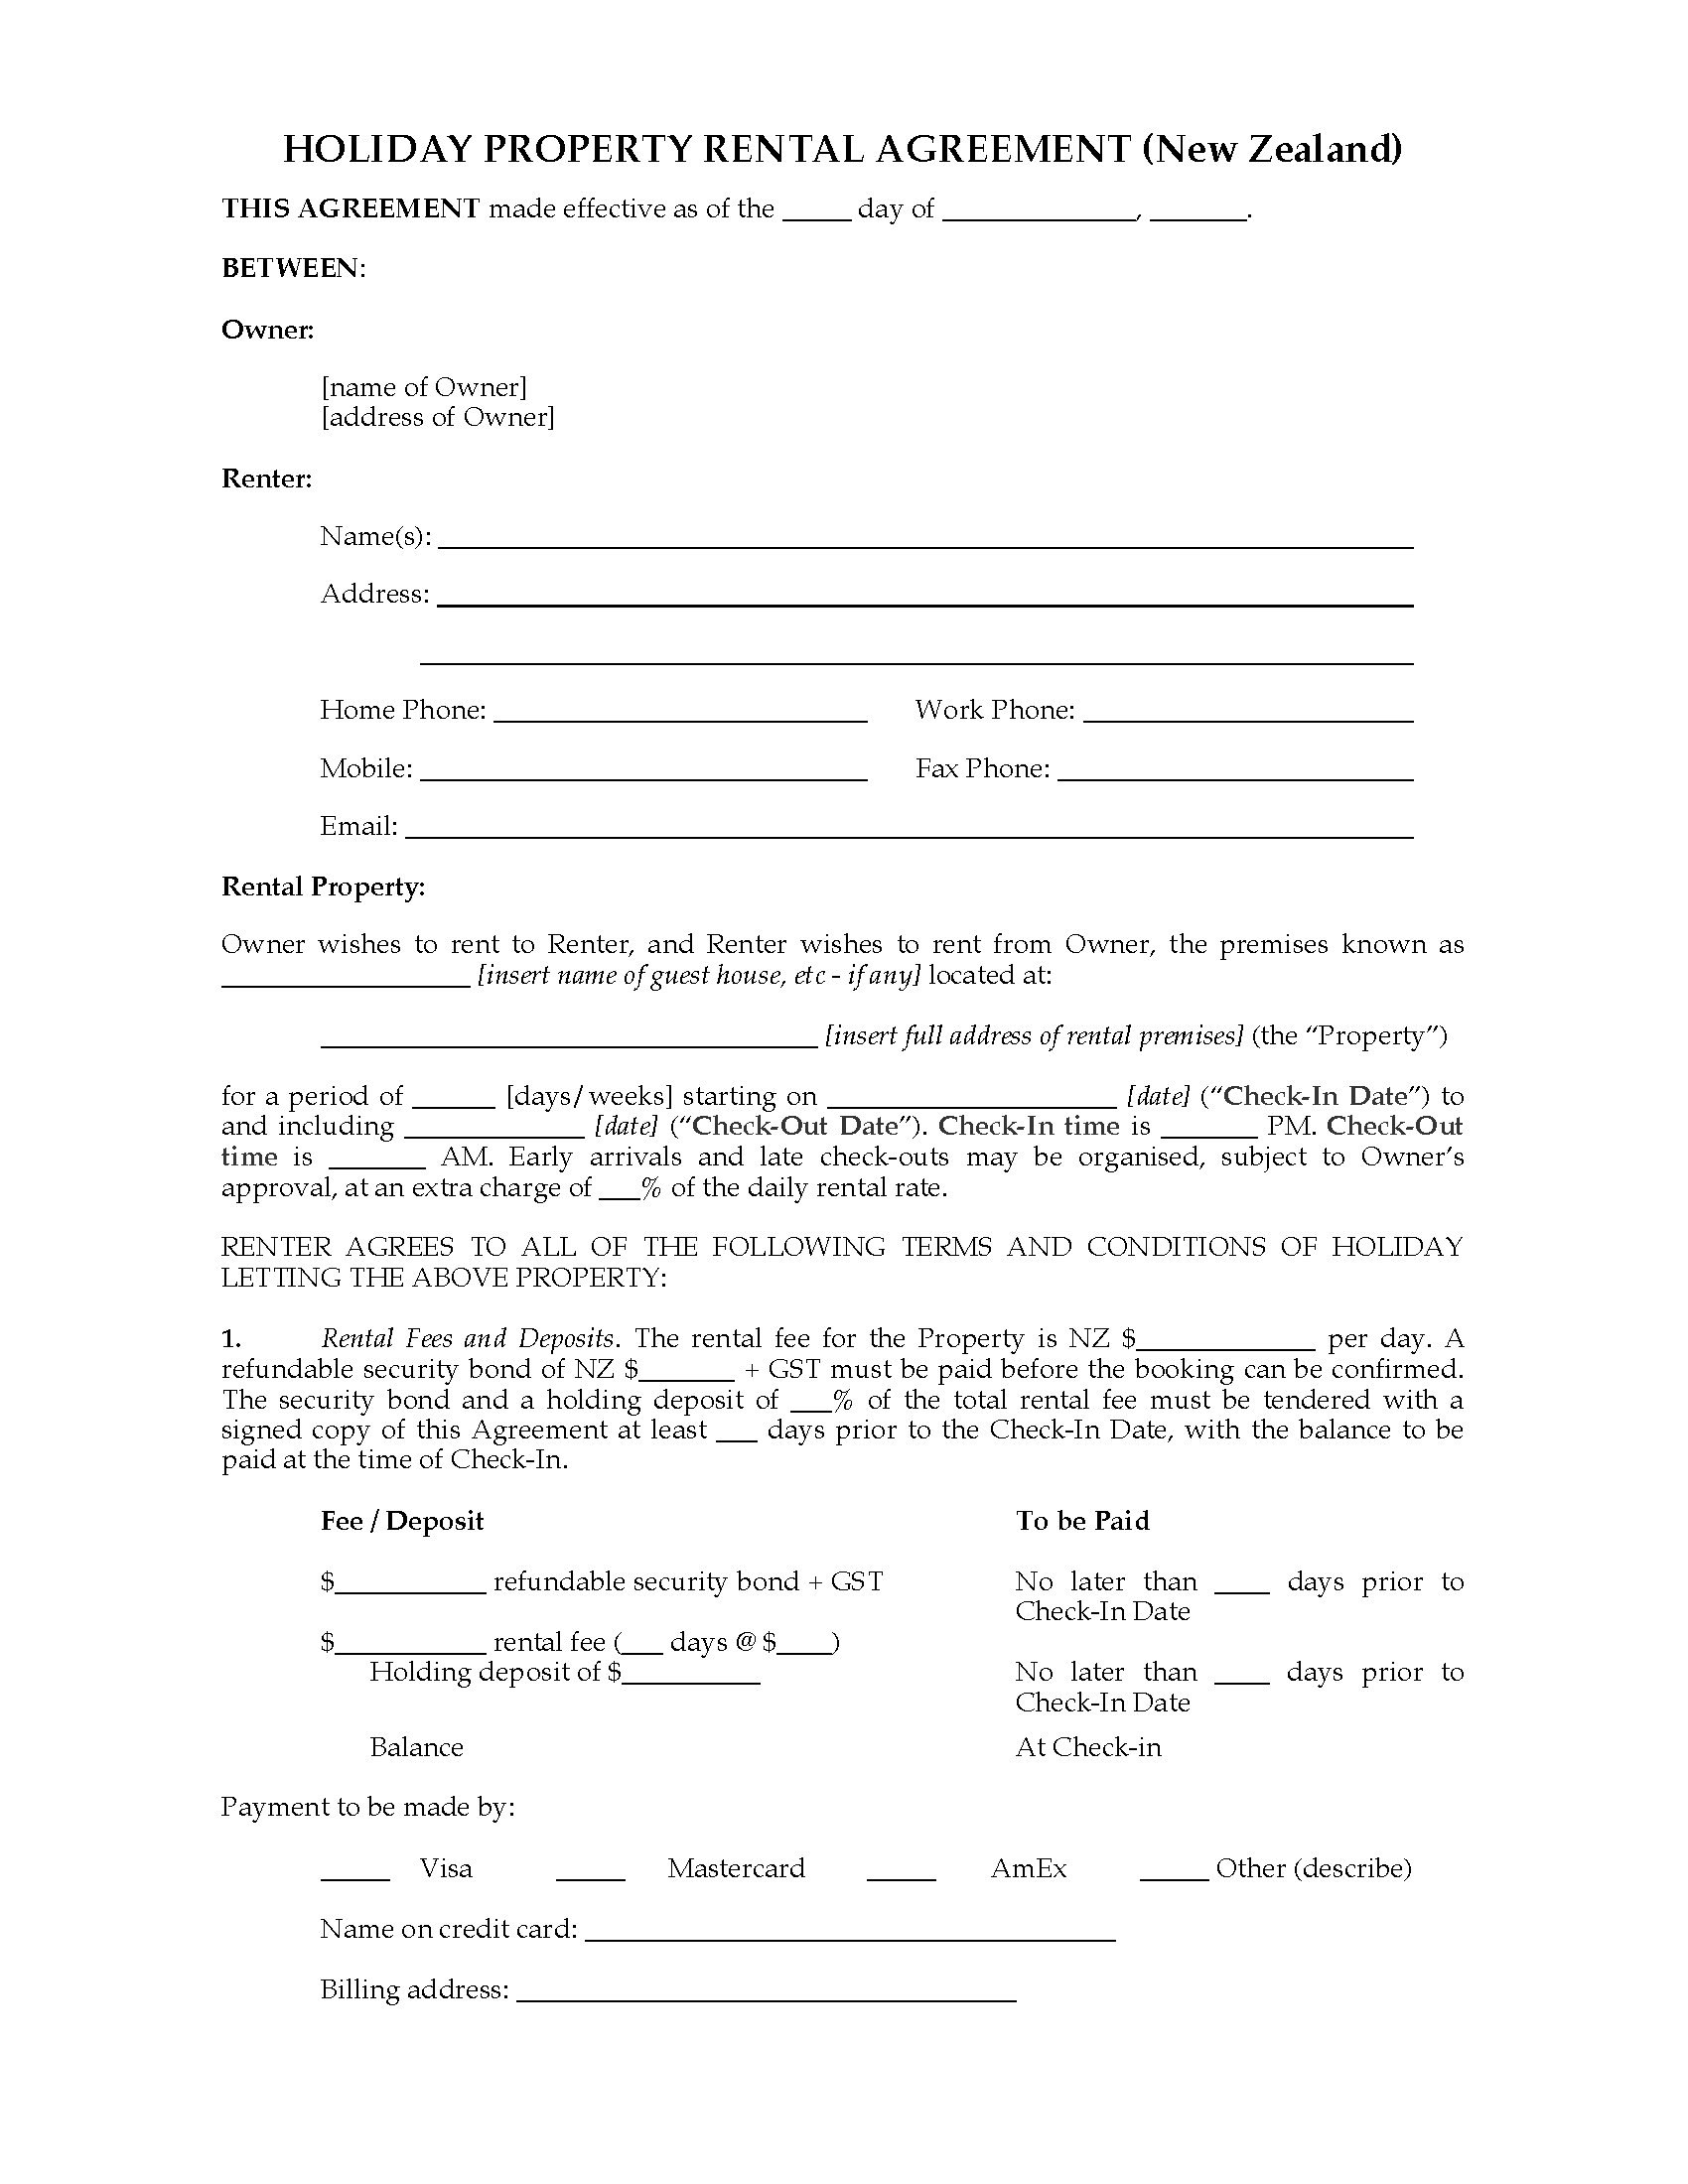 New Zealand Holiday Property Rental Agreement Inside Rental Agreement Template New Zealand